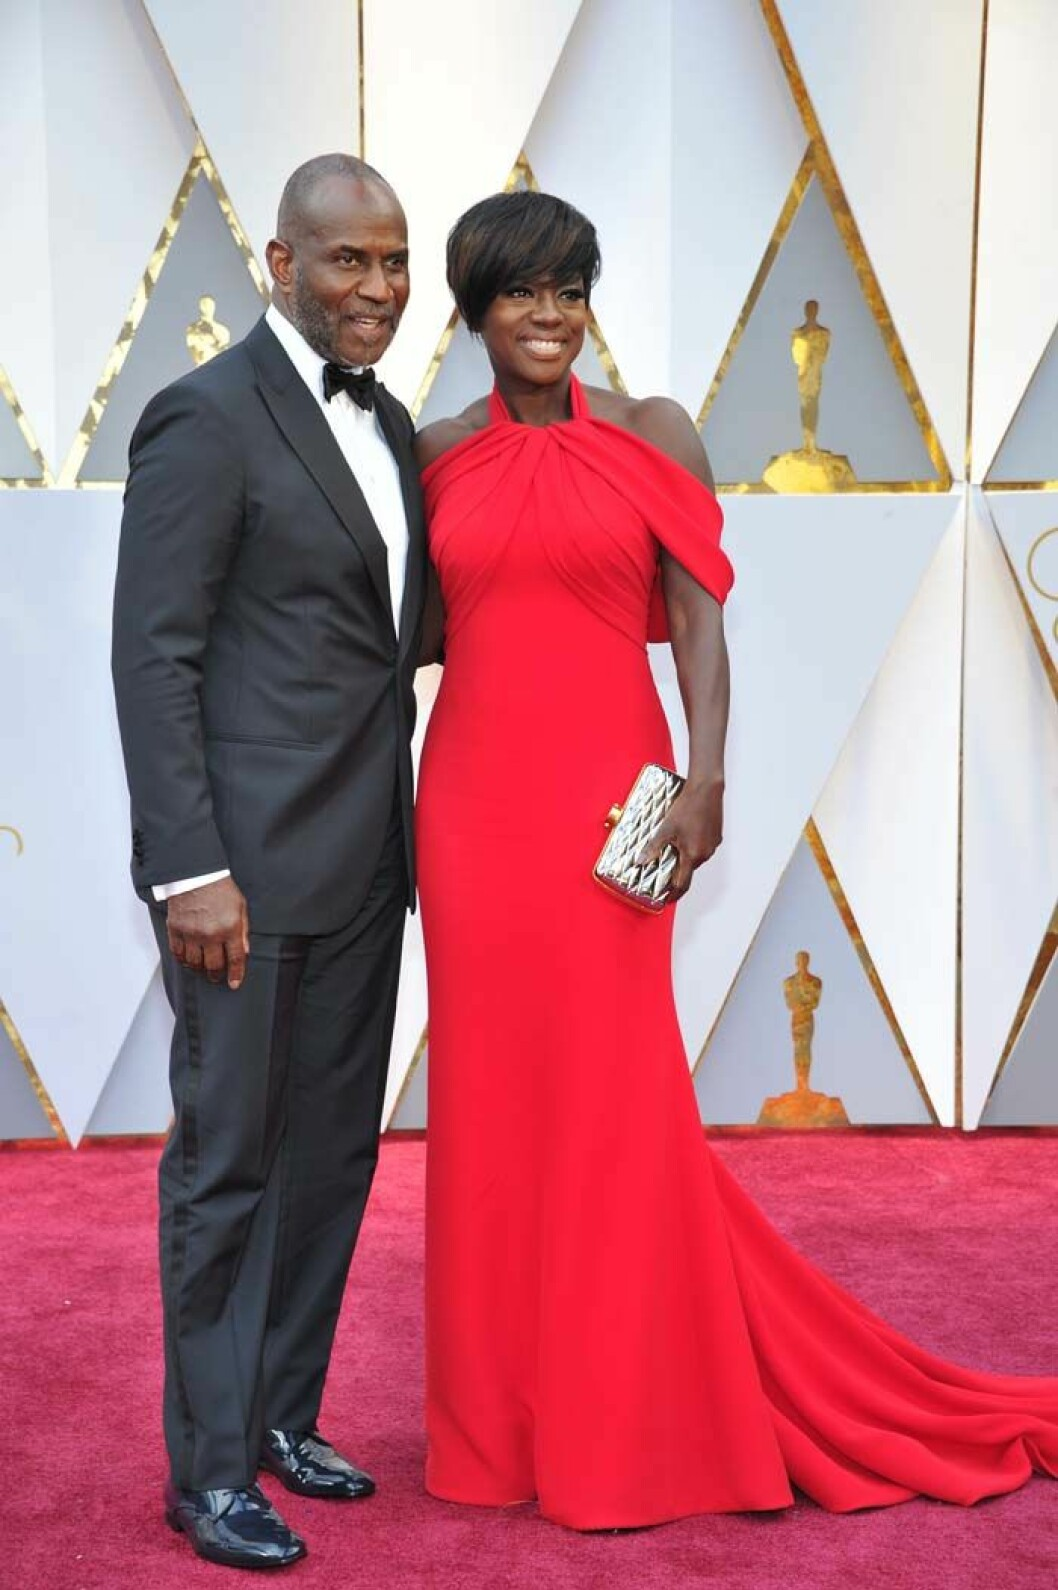 LOS ANGELES, CA - FEBRUARY 26: Julius Tennon and Viola Davis at the 89th Academy Awards at the Dolby Theatre in Los Angeles, California on February 26, 2017. Credit: mpi99/MediaPunch